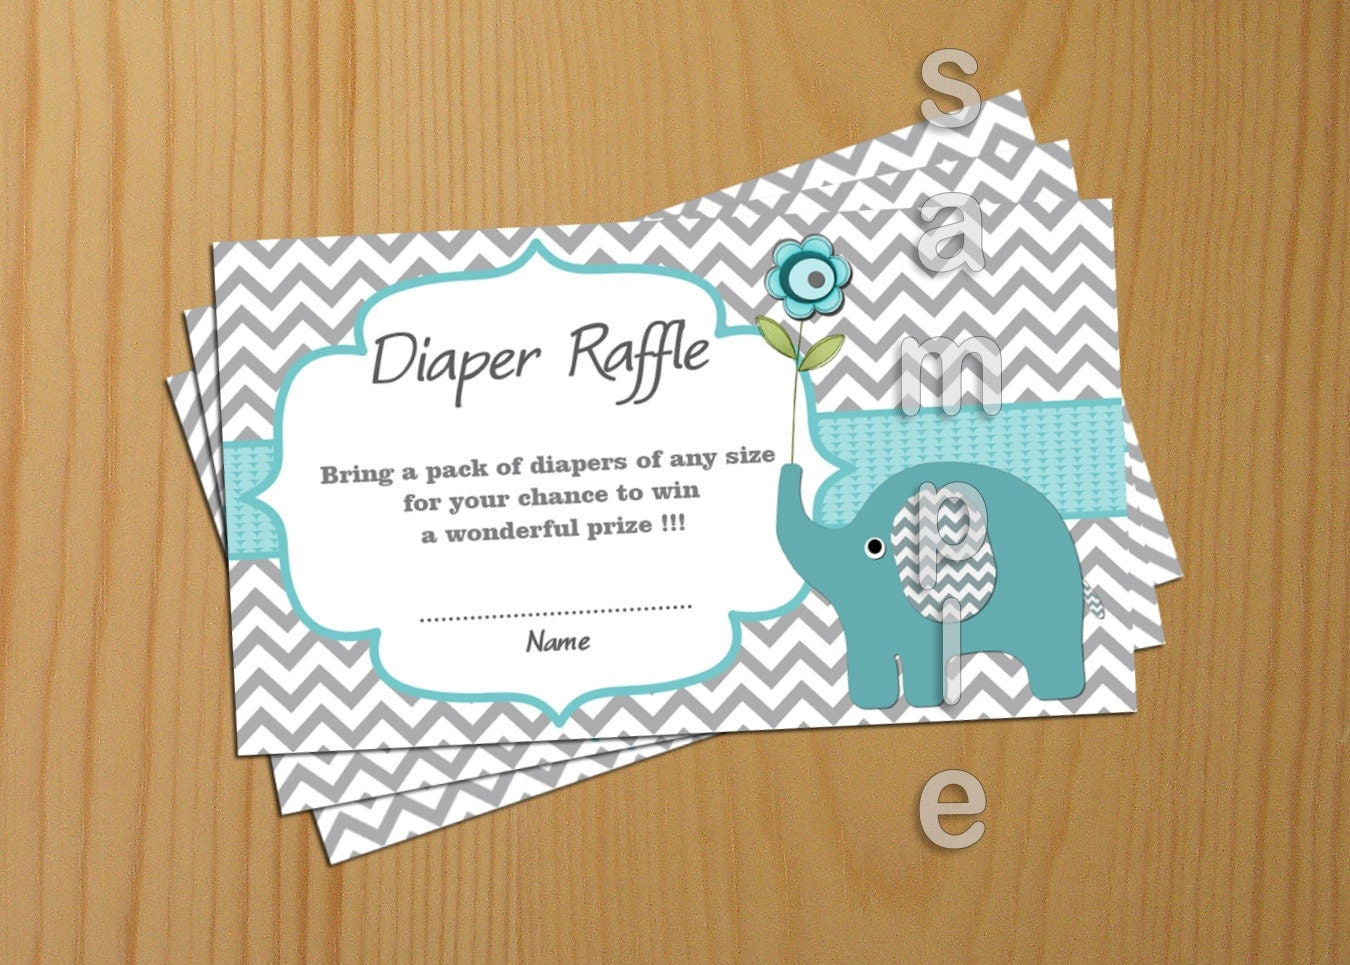 raffle tickets elephant baby shower diaper raffle ticket diaper raffle card diapers raffles printable digital files 57